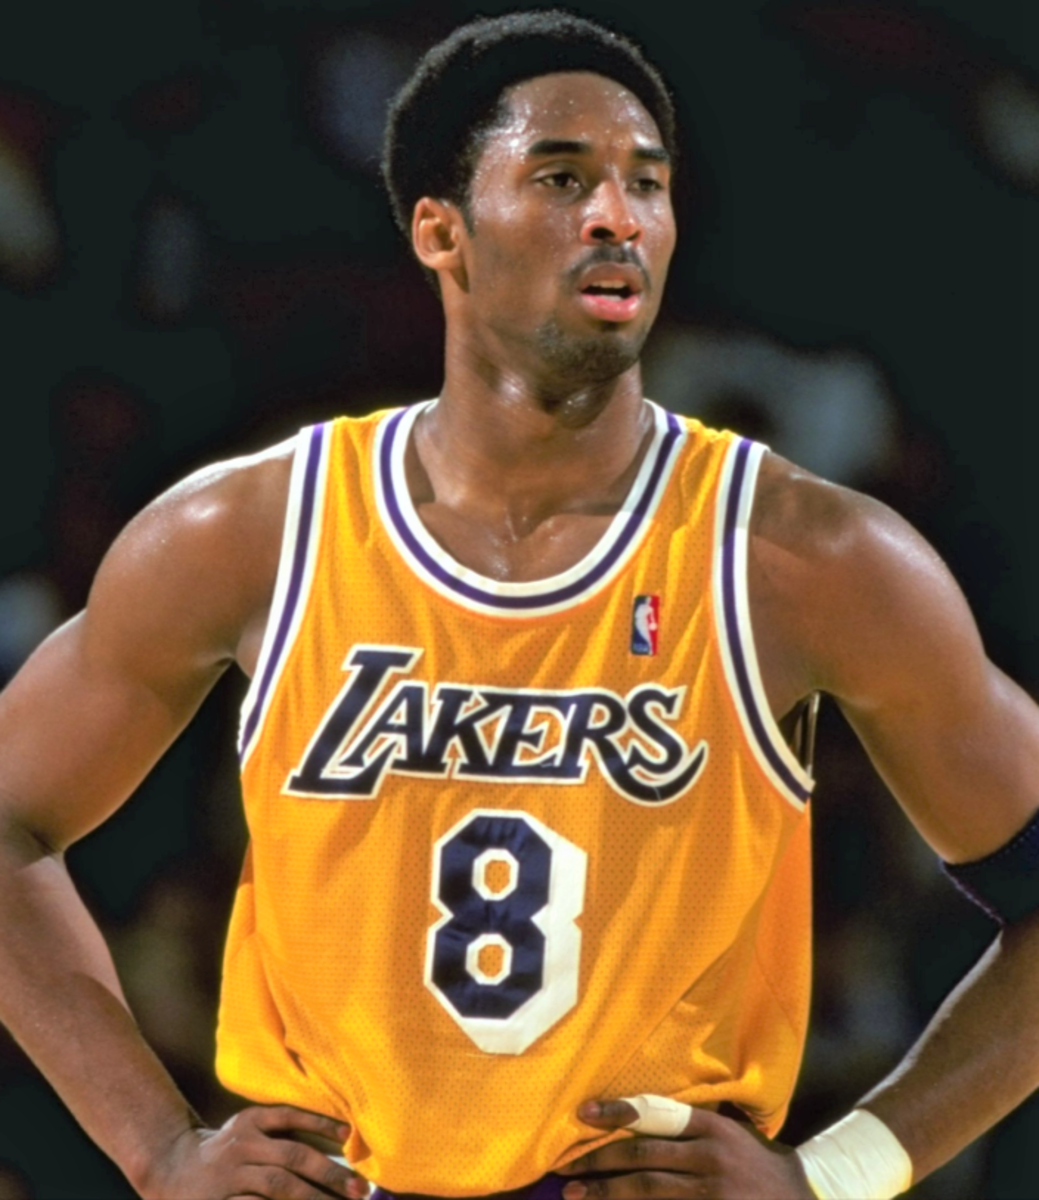 Kobe Bryant playing career with the Los Angeles Lakers was from 1996-2016